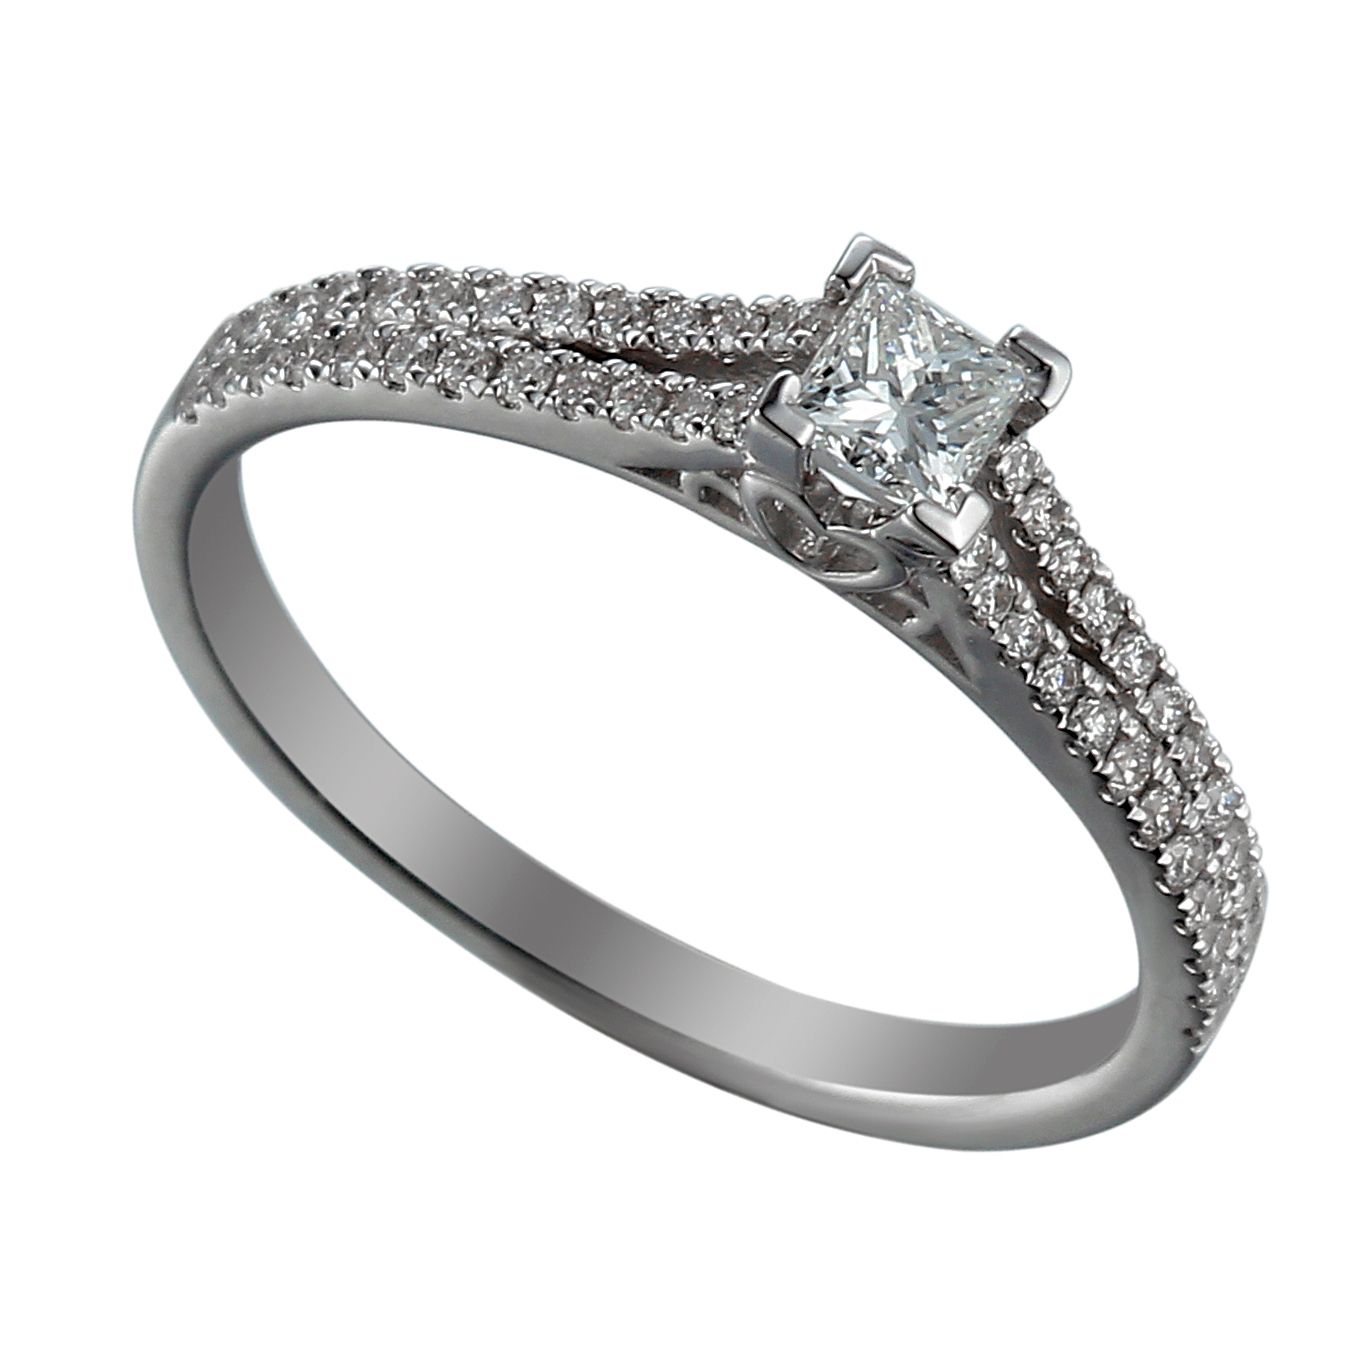 18ct White Gold Princess Cut Diamond Solitaire Ring with Diamond Set Shoulders-0